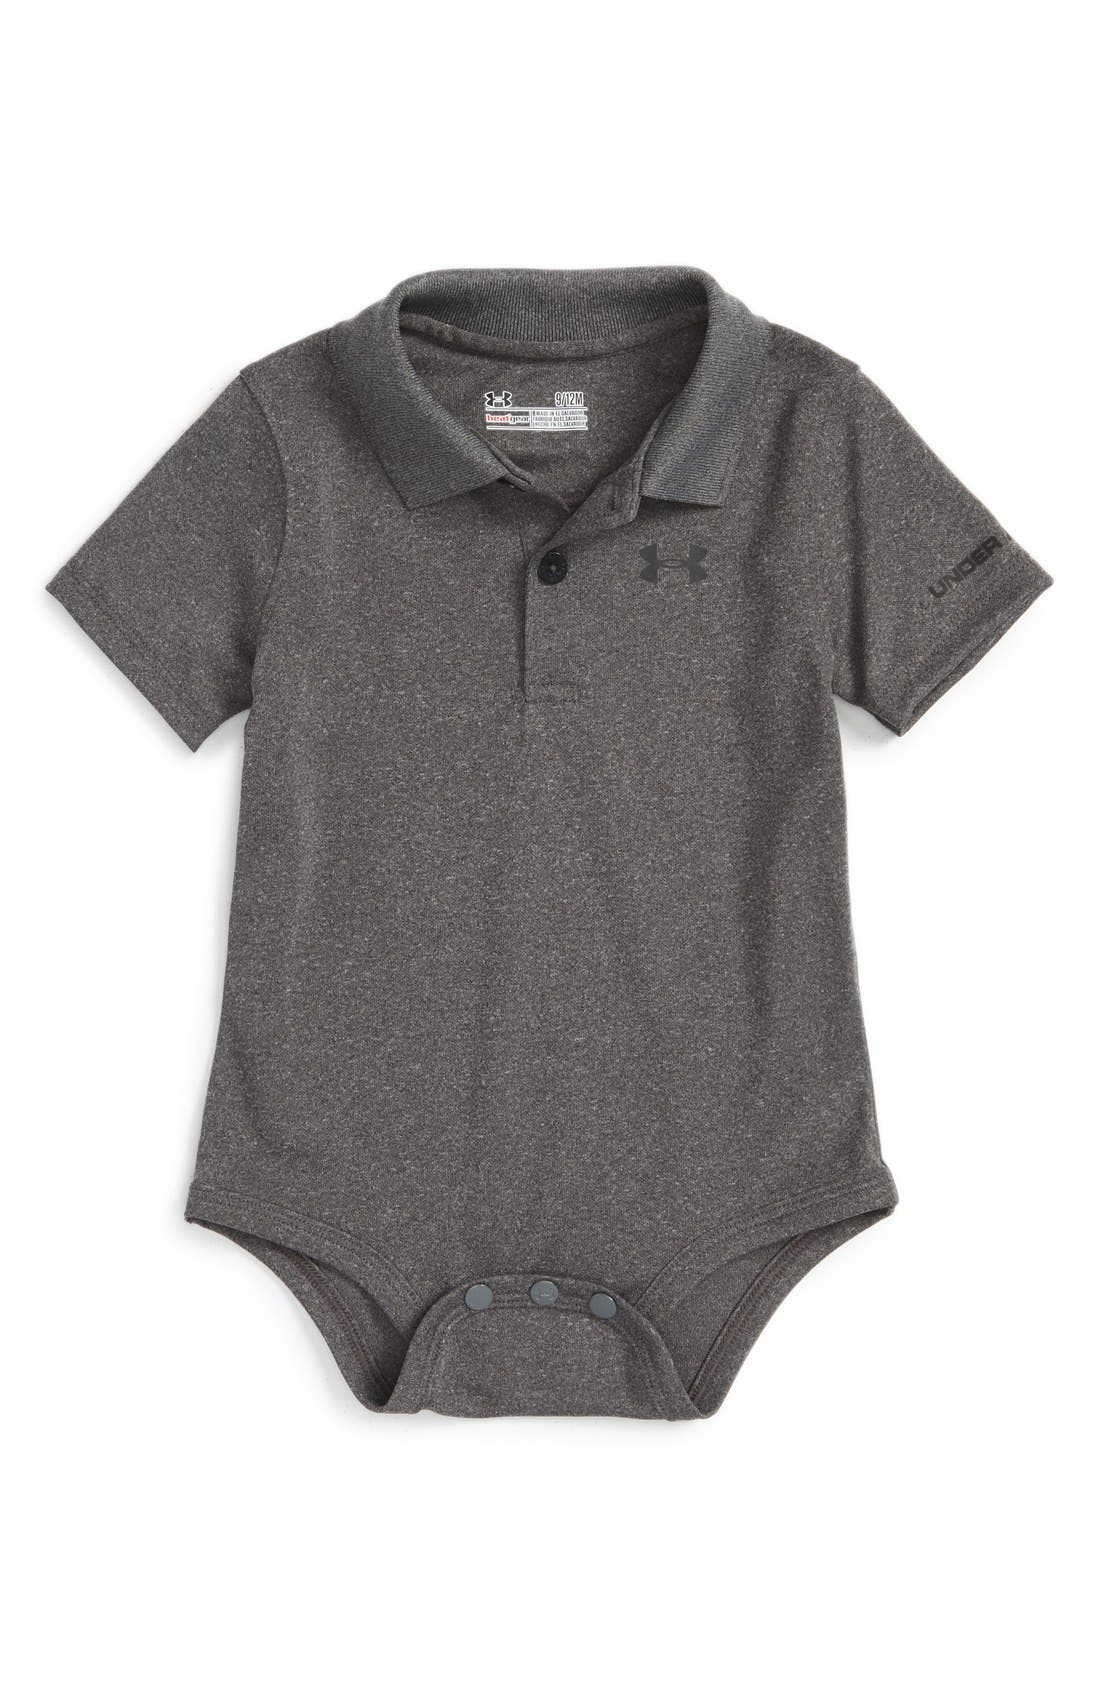 HeatGear<sup>®</sup> Polo Bodysuit,                             Main thumbnail 1, color,                             Carbon Heather